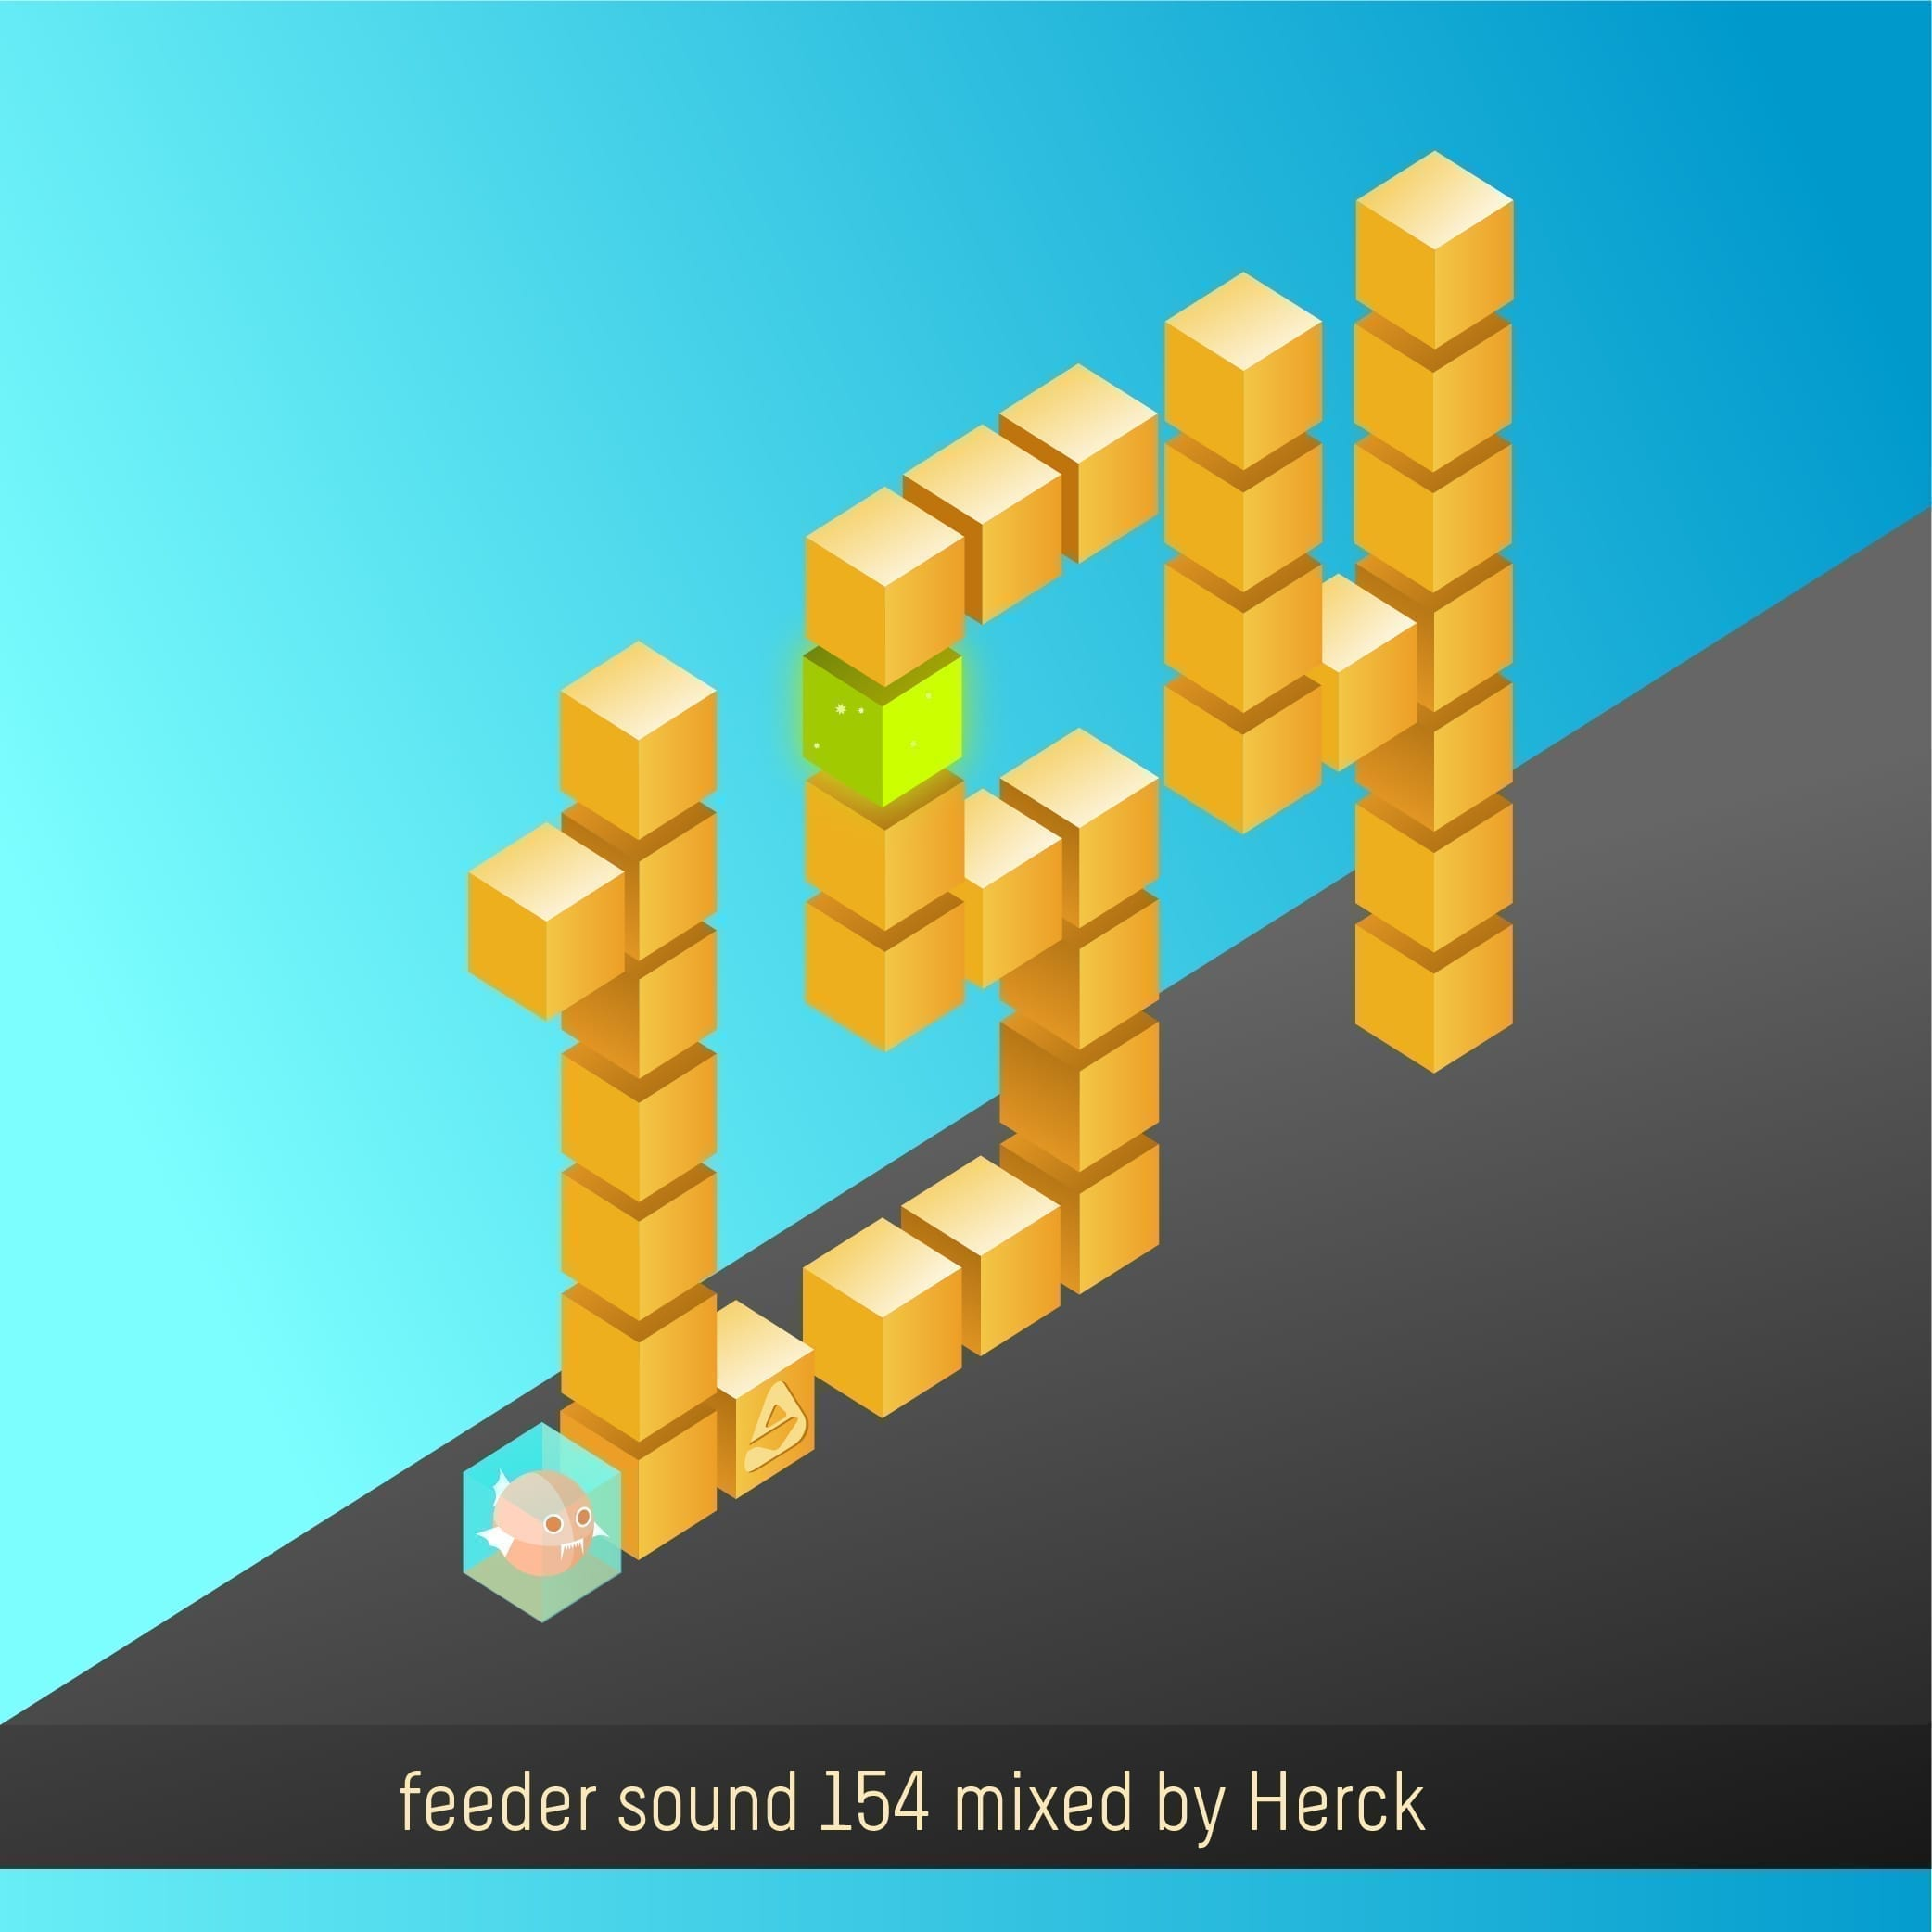 feeder sound 154 mixed by Herck 01